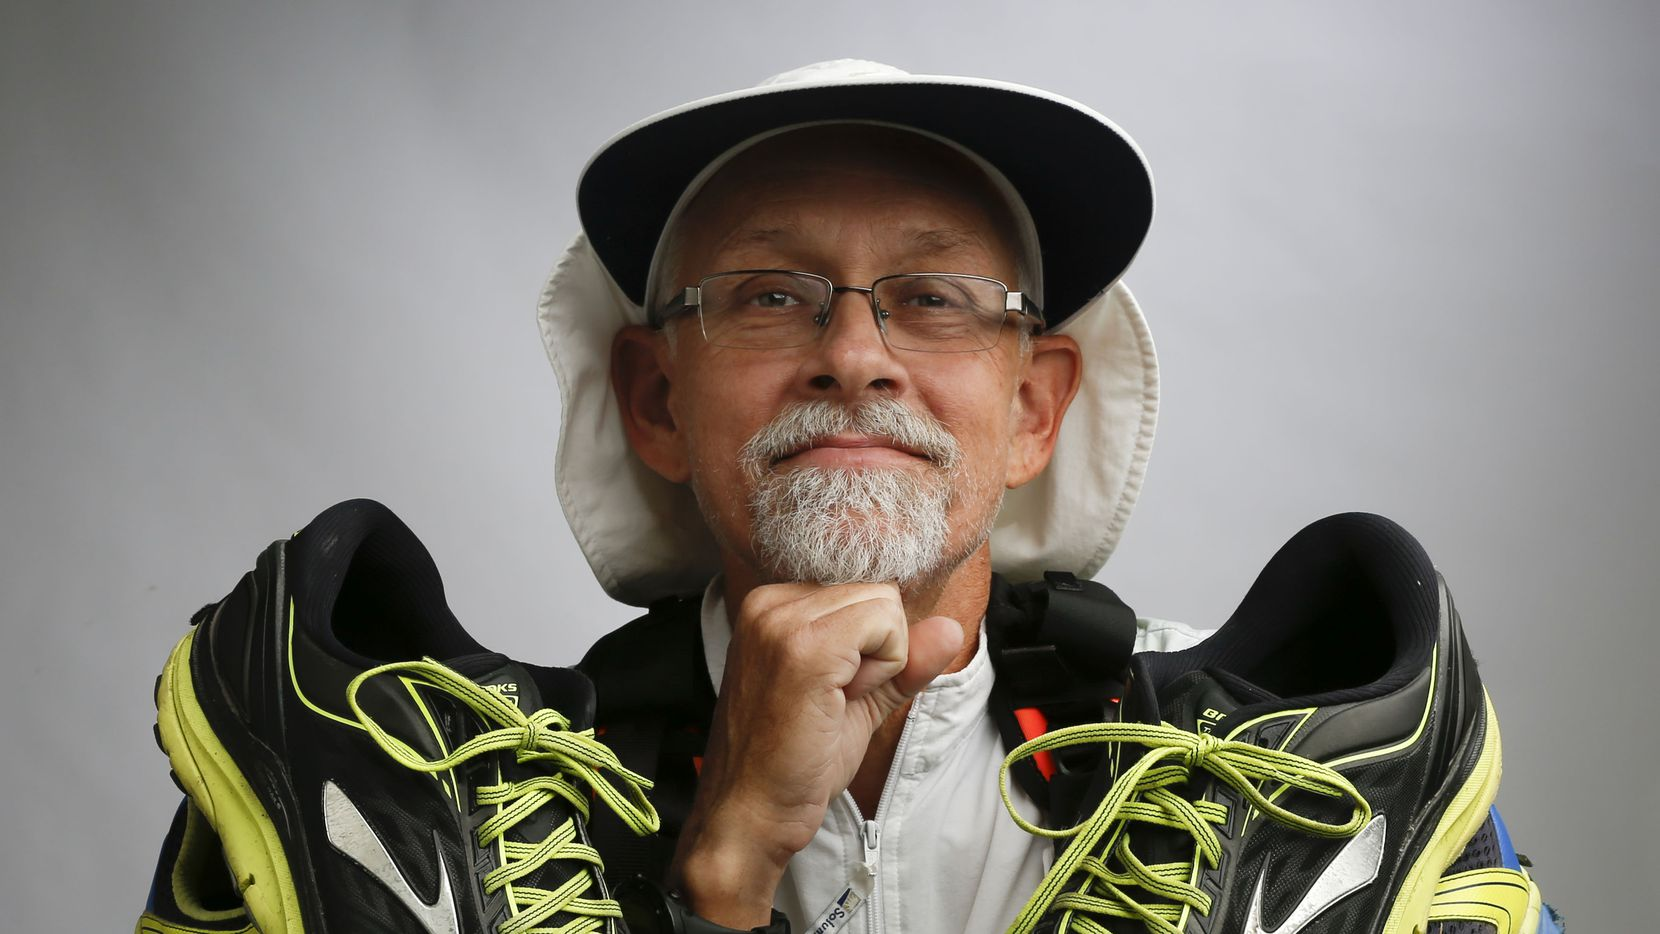 Don Muchow, of Plano, used multiple pairs of shoes to complete the 8th Annual Capital to Coast Relay earlier this month. He ran the The 223 mile relay, by himself and has Type 1 diabetes. Photos taken in the DMN photo studio Friday, November 3, 2017.